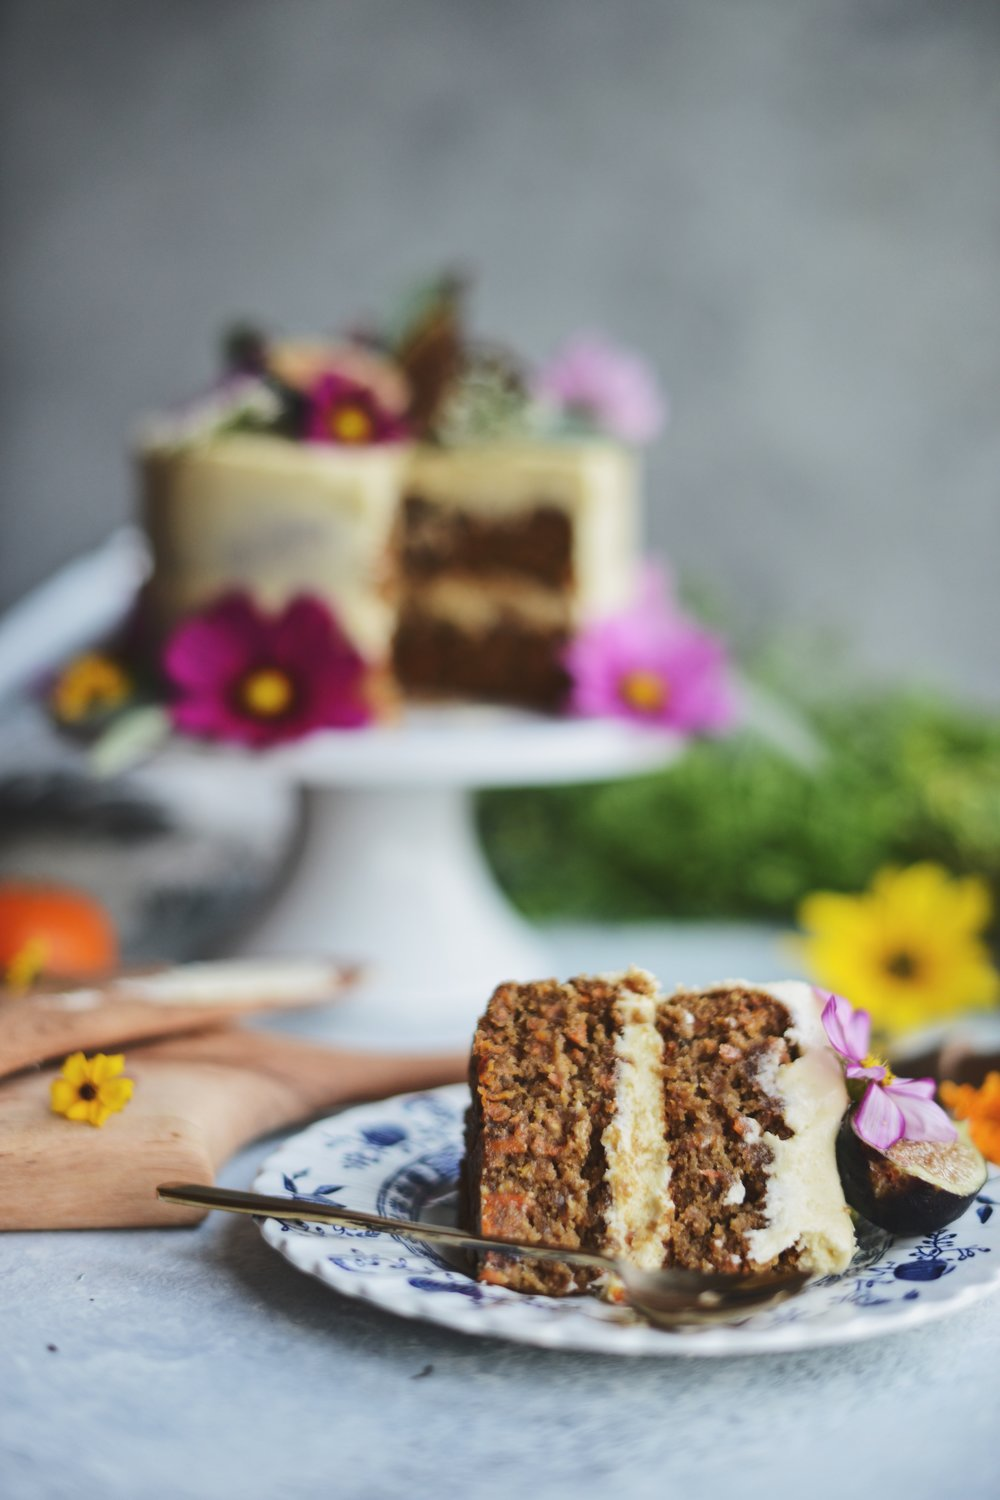 Fare Isle | Vegan Carrot Cake with Lemon Buttercream and Fresh Figs